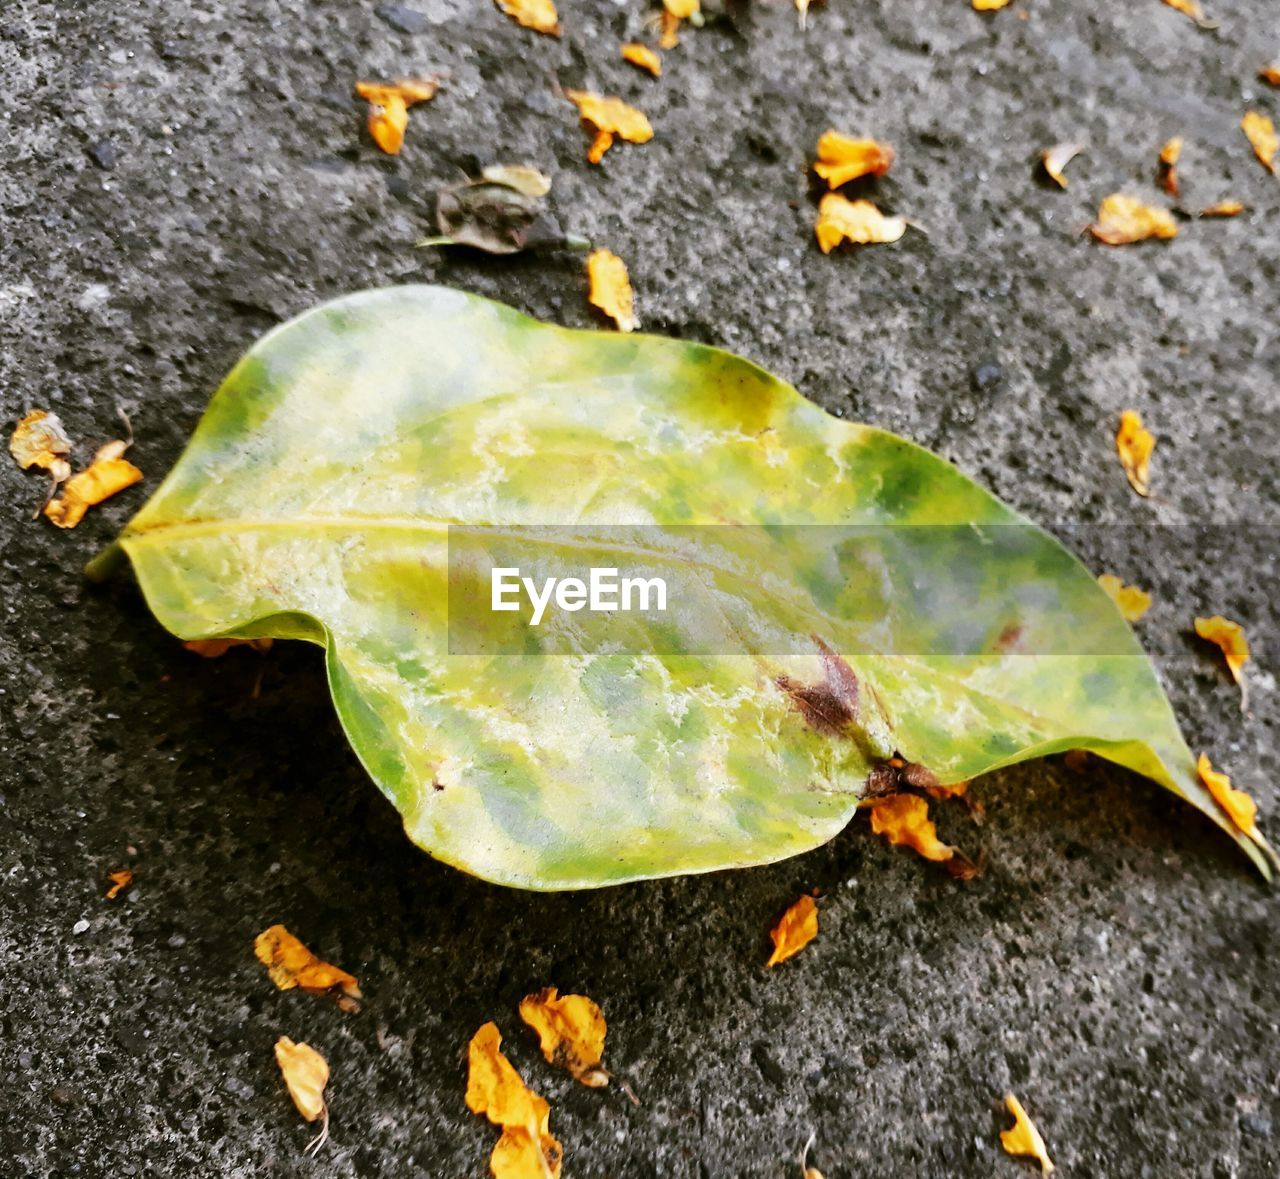 leaf, close-up, green color, high angle view, outdoors, no people, day, nature, growth, fragility, freshness, food, flower